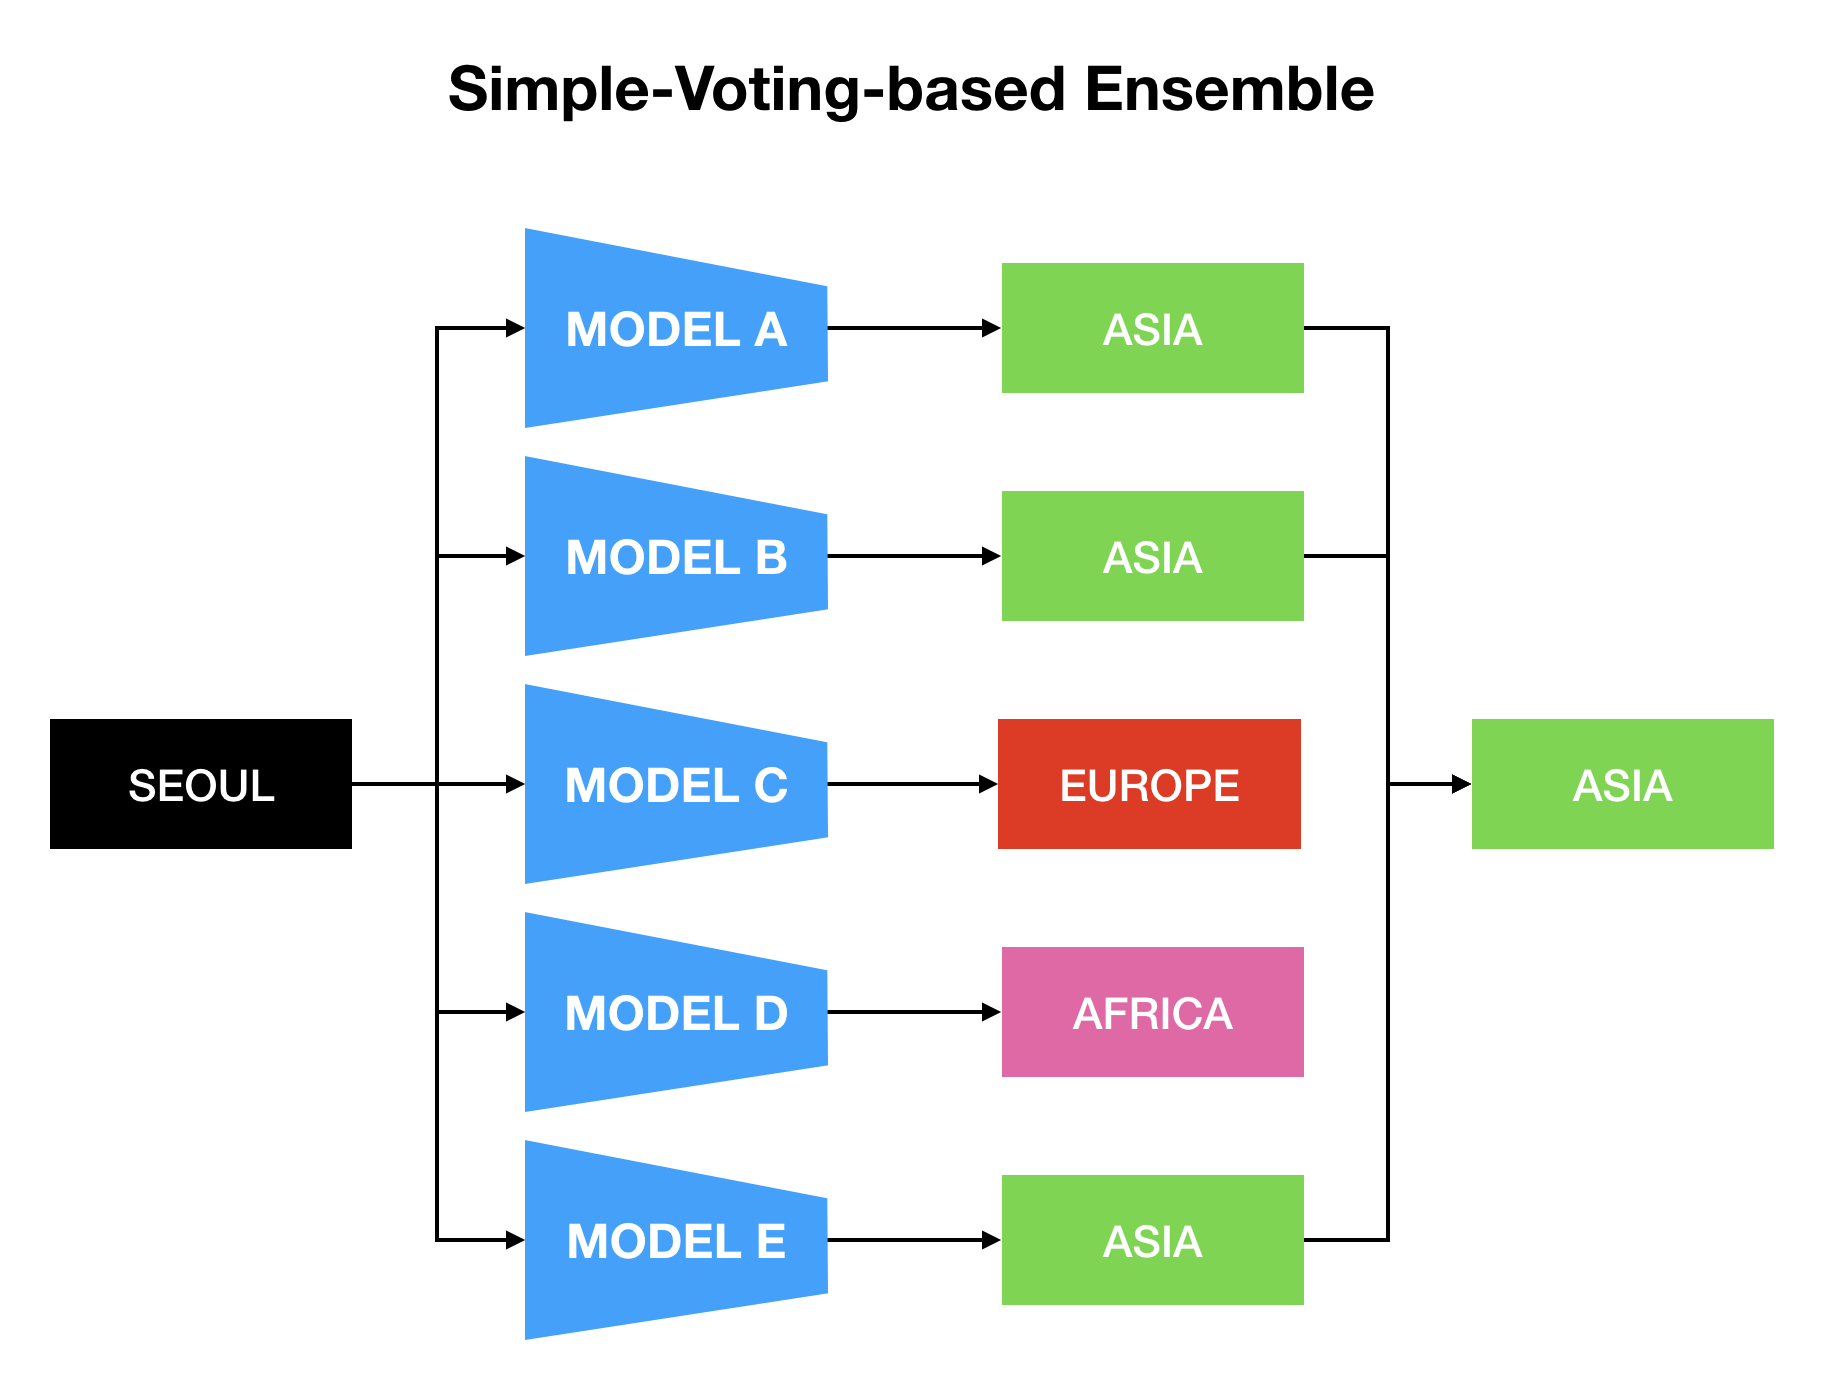 simple-voting-based ensemble model